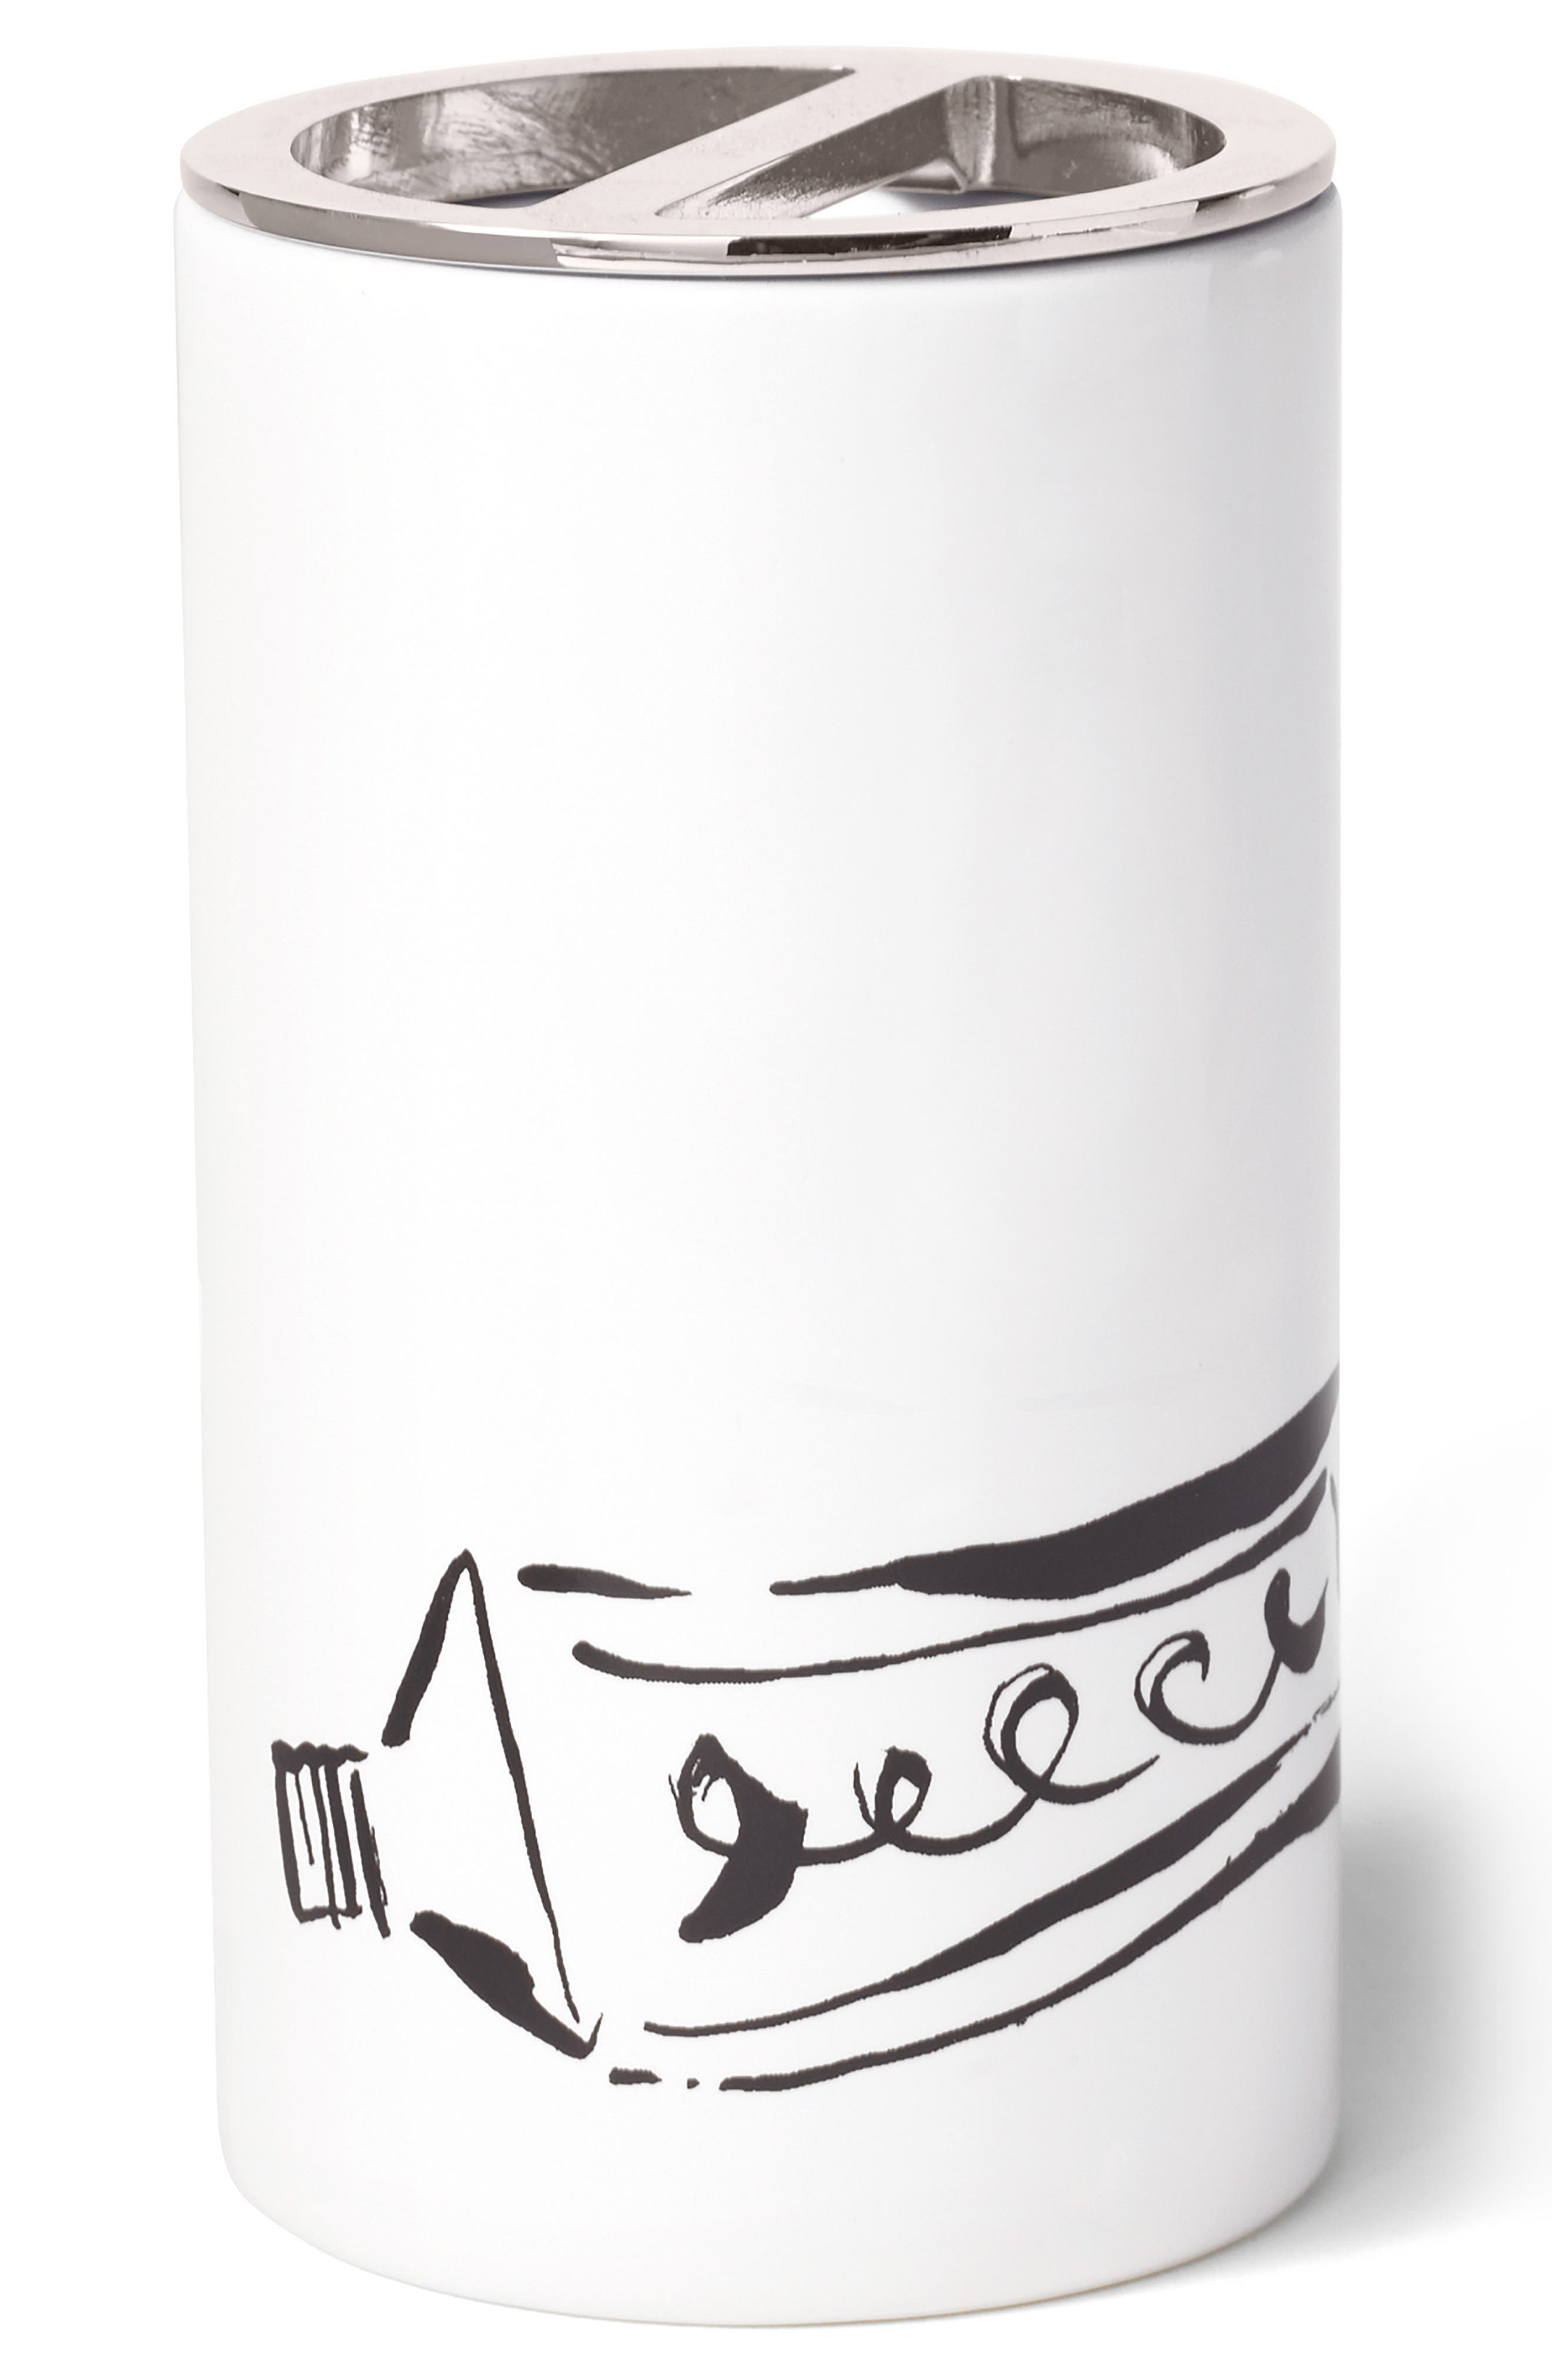 Alternate Image 1 Selected - kate spade new york daisy place toothbrush holder